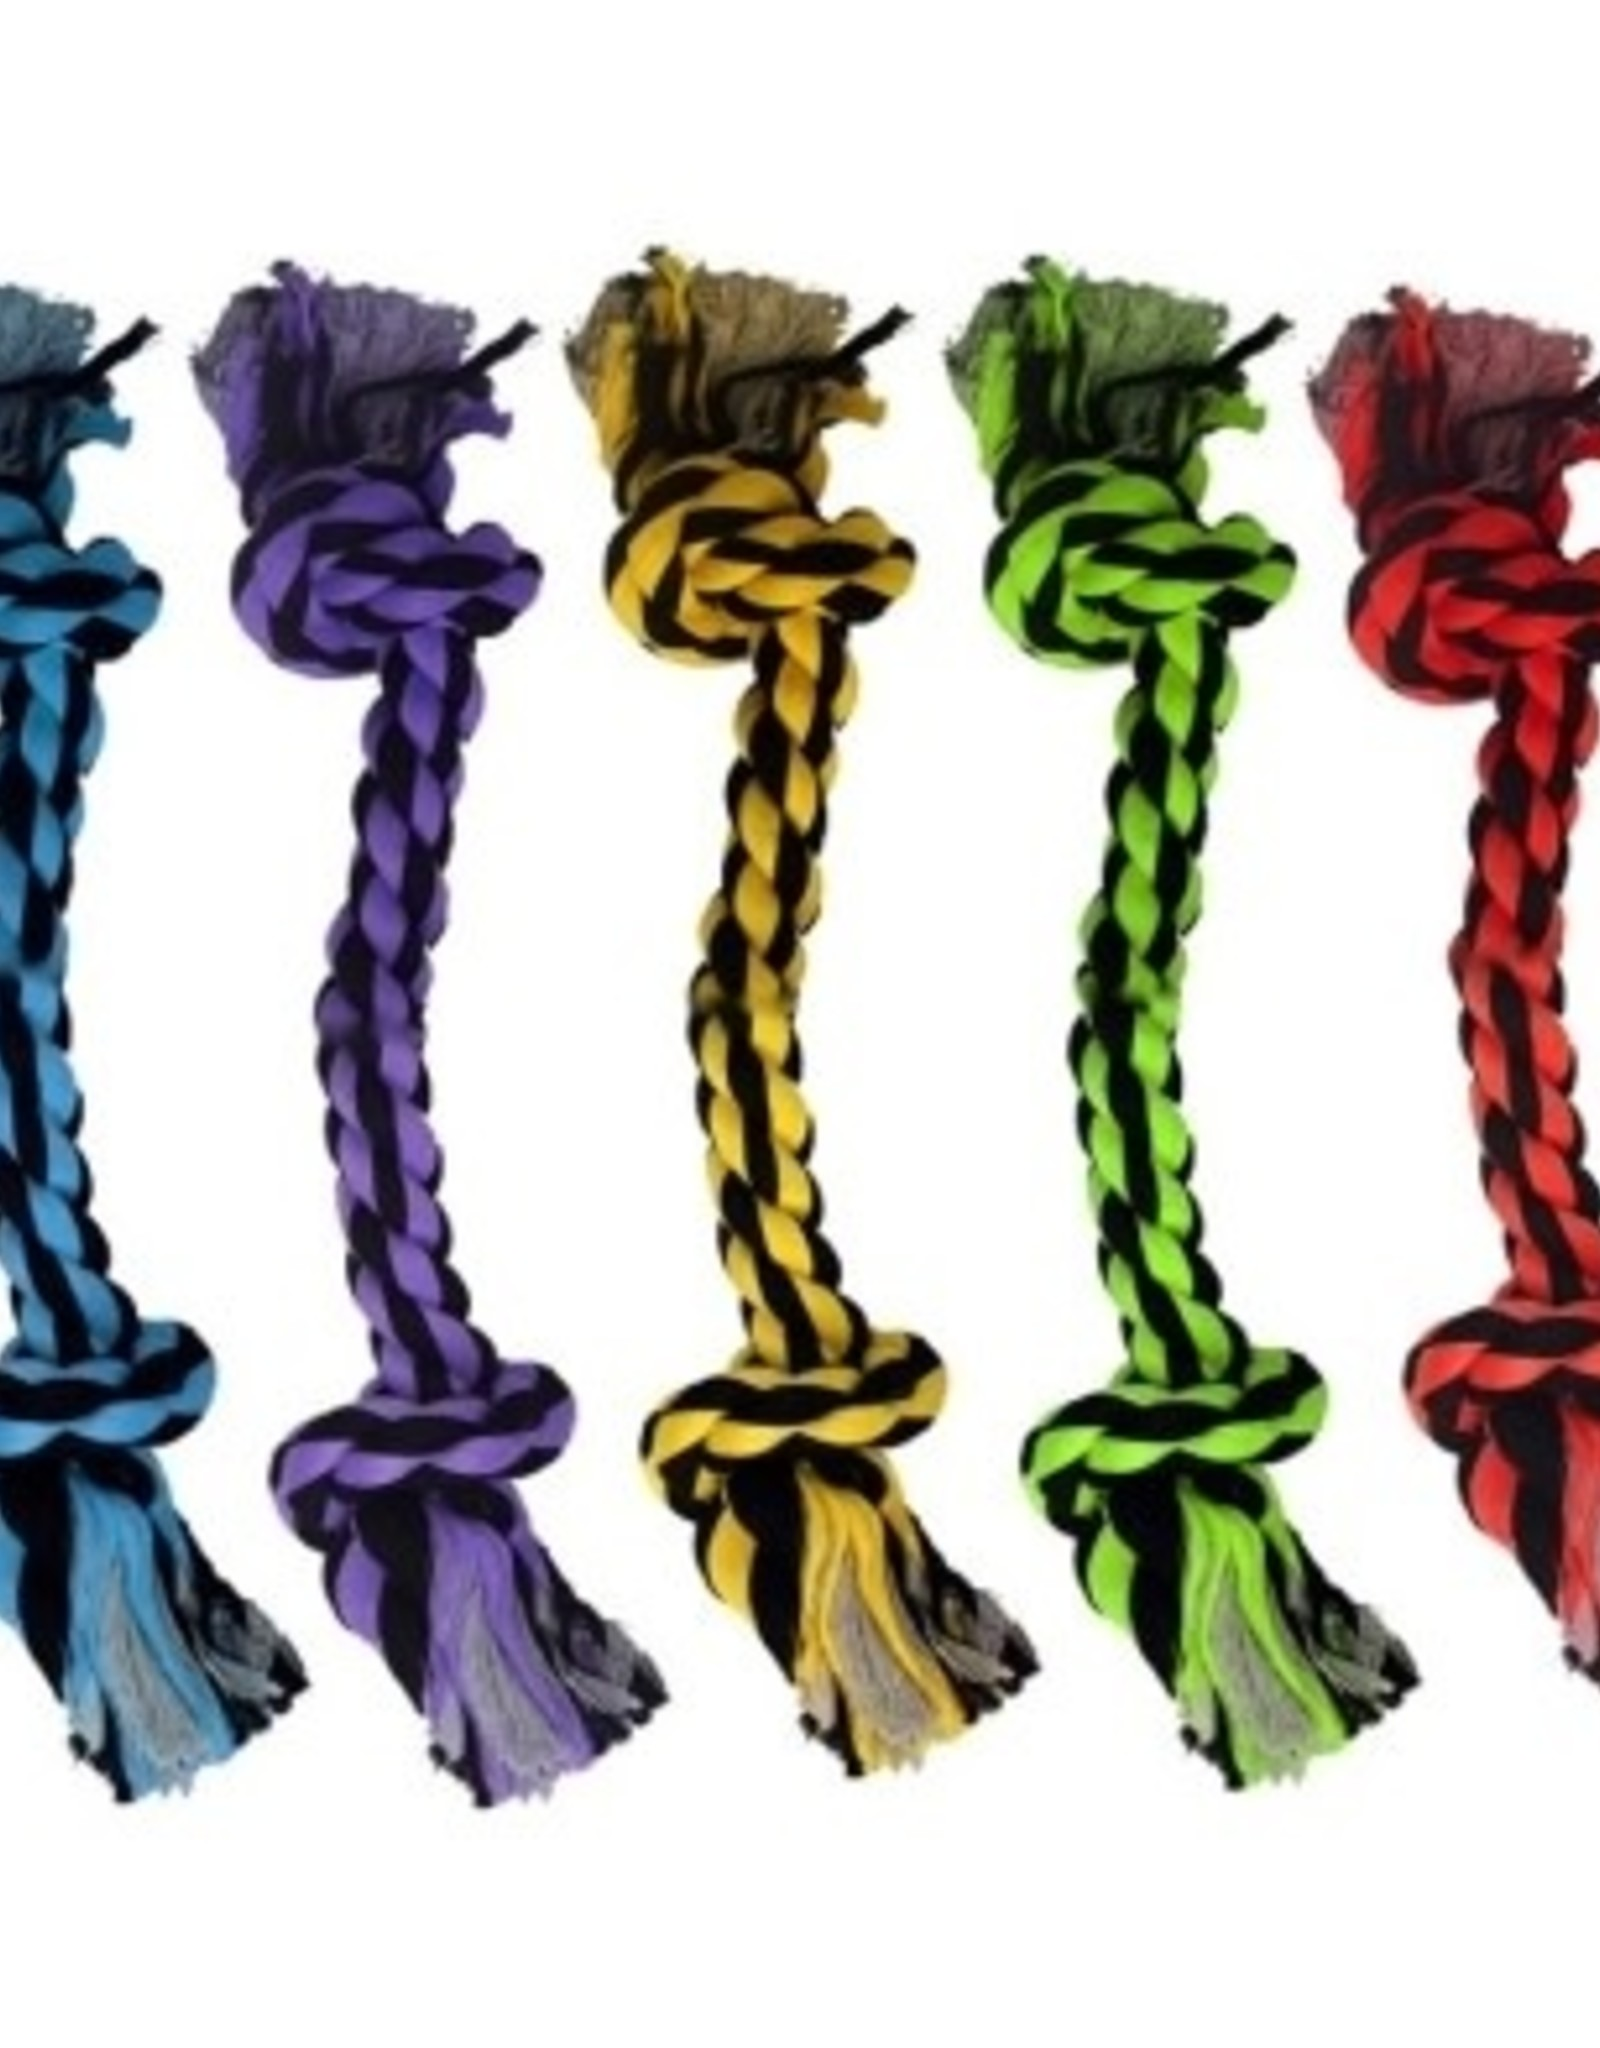 Nuts For Knots 2-Knot Rope - 9 inch